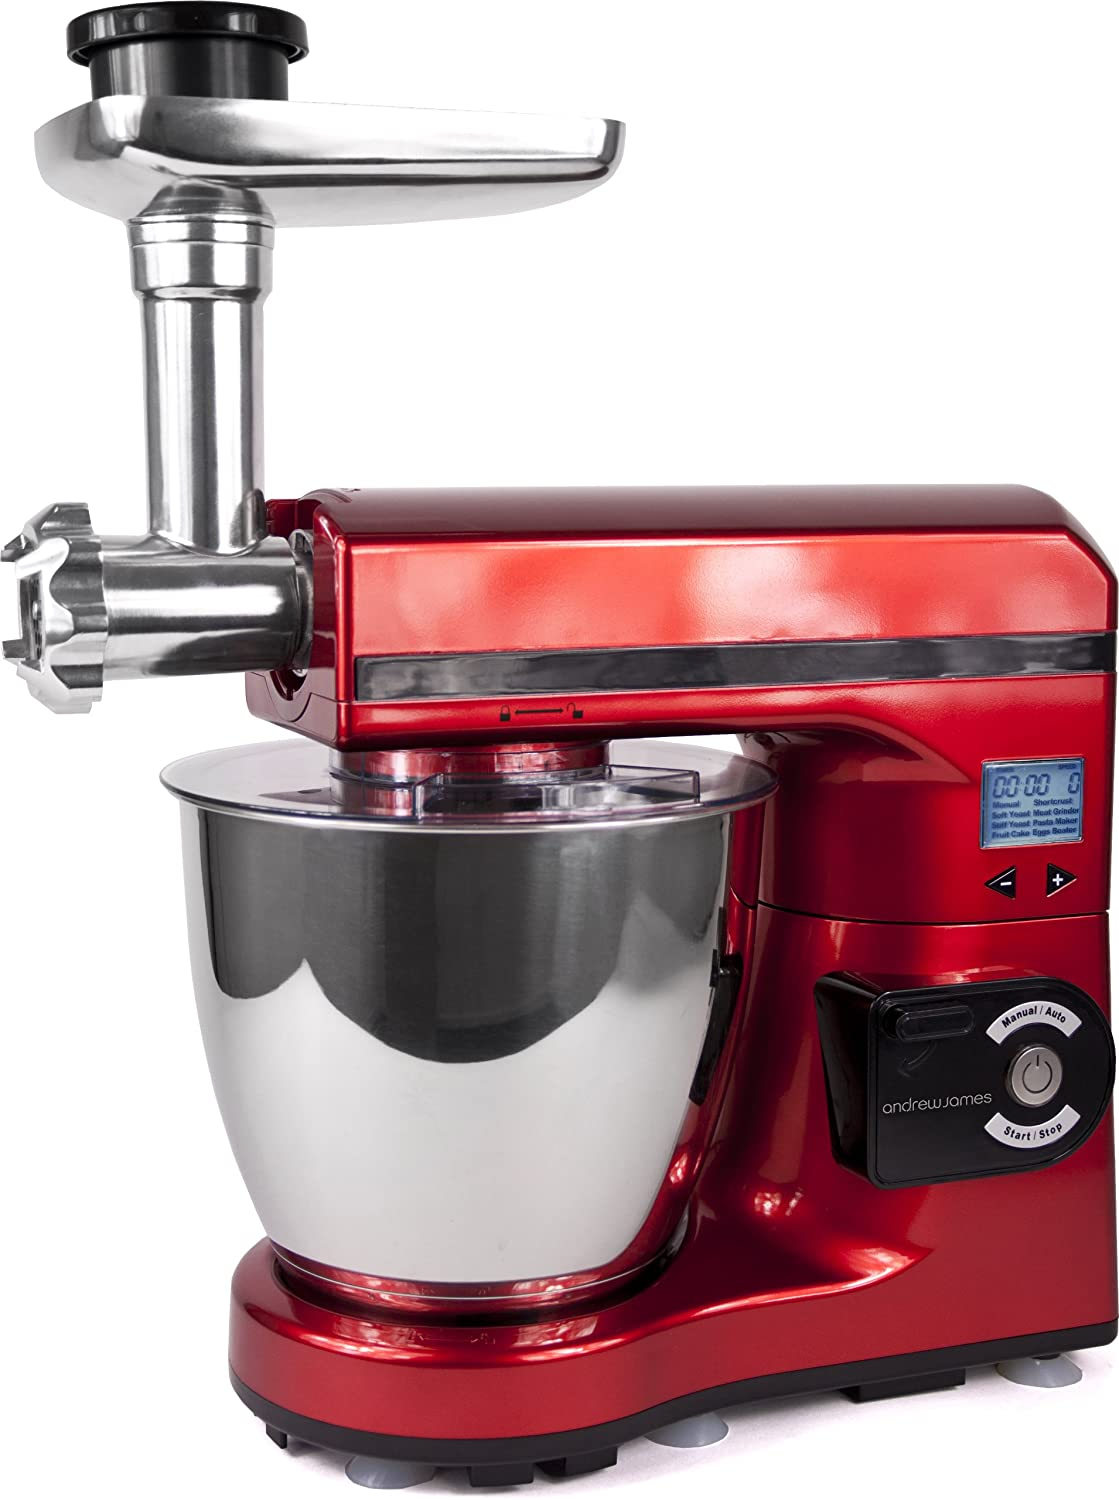 Top 10 Best Andrew James Stand Mixers 2018 2019 On